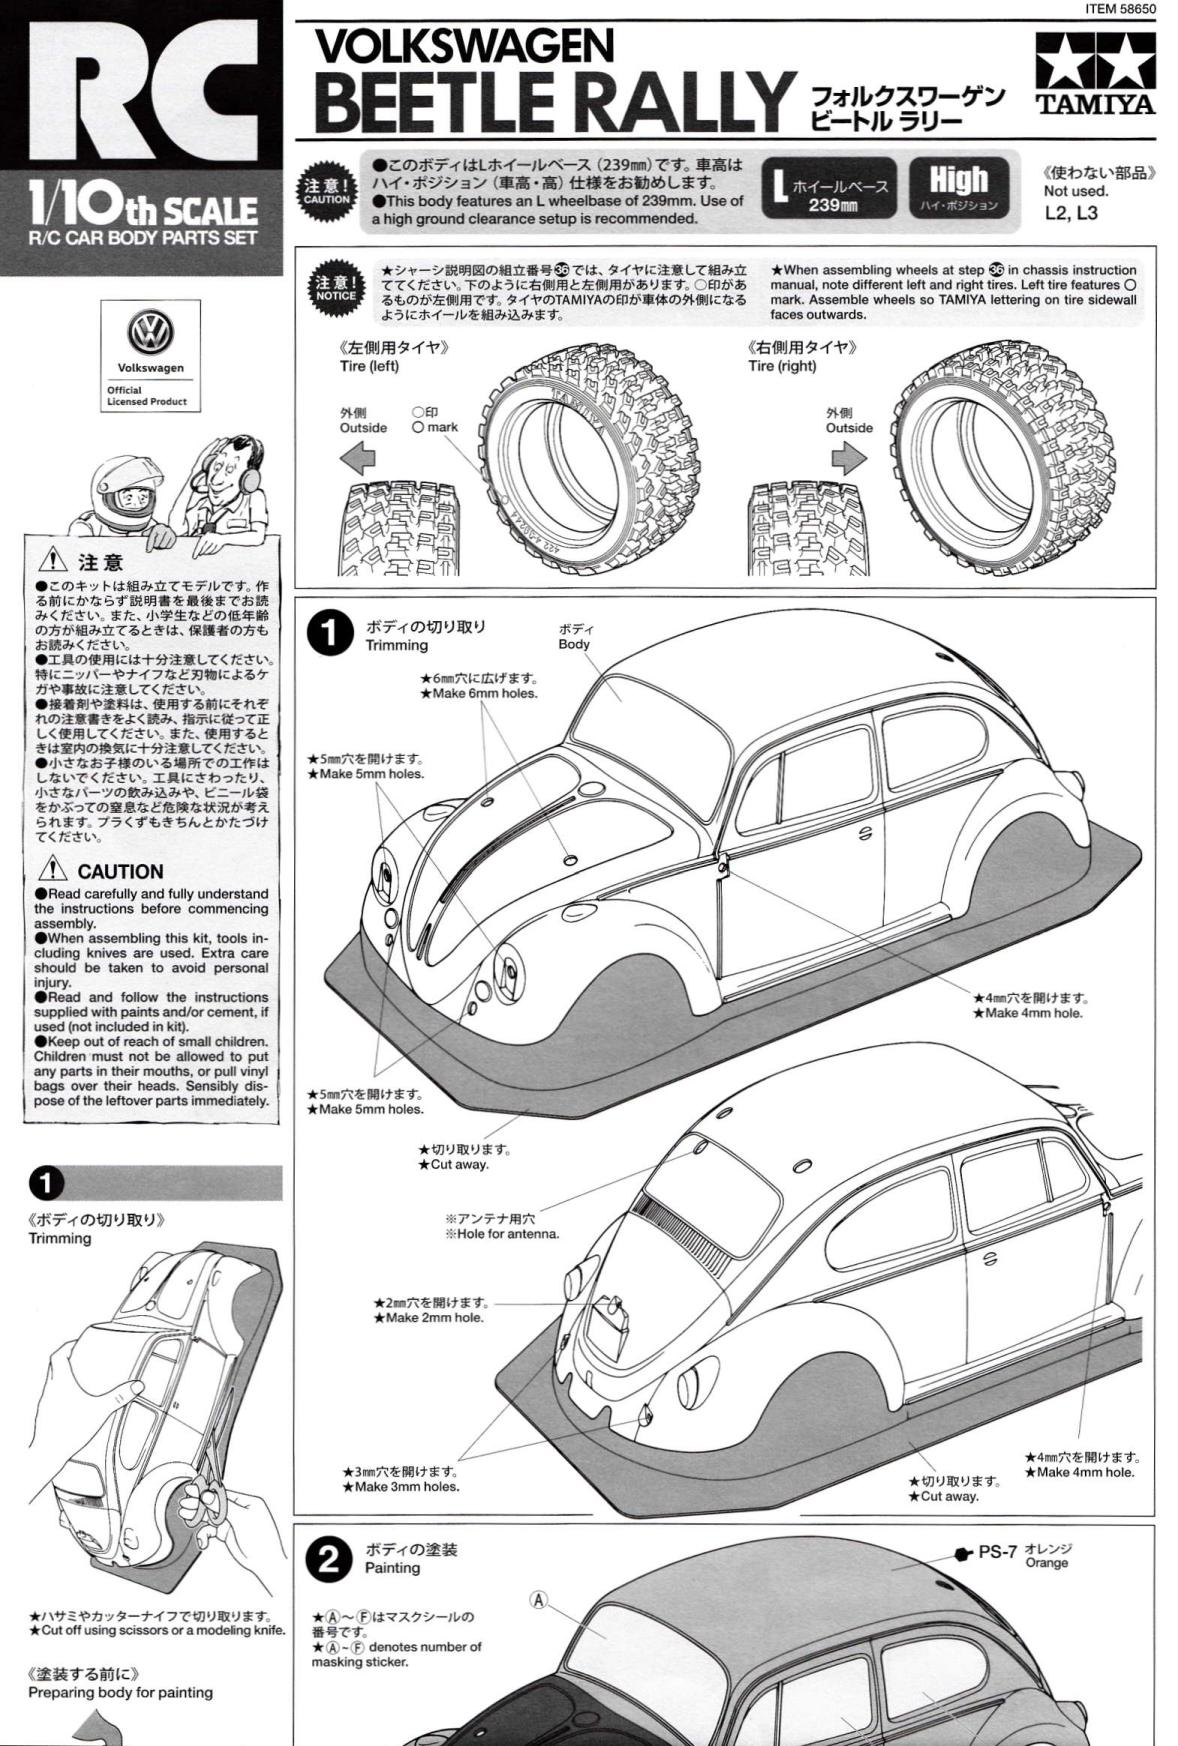 2008 vw beetle manual pdf